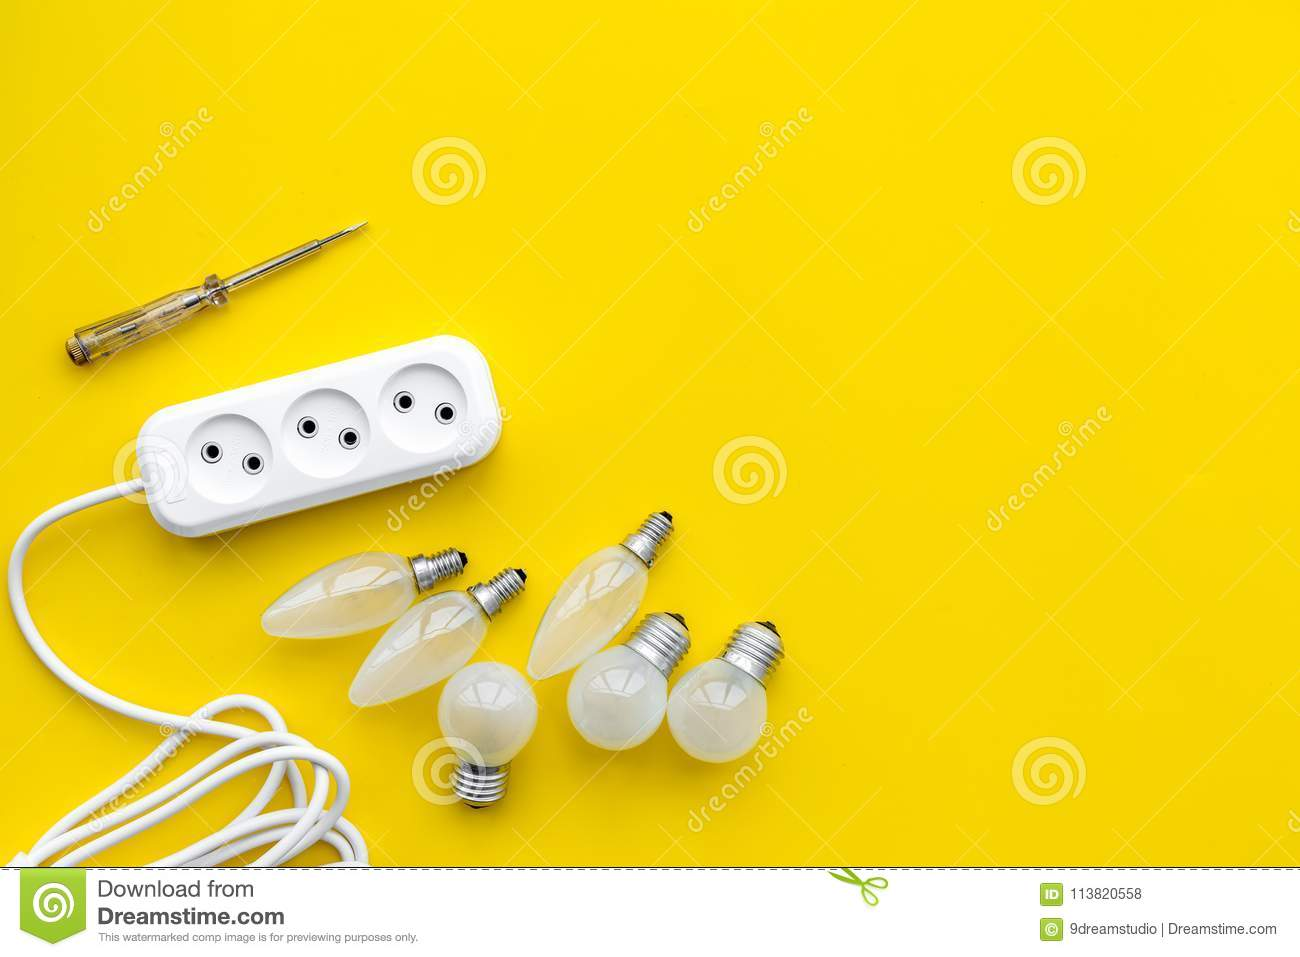 Wiring In Outlet